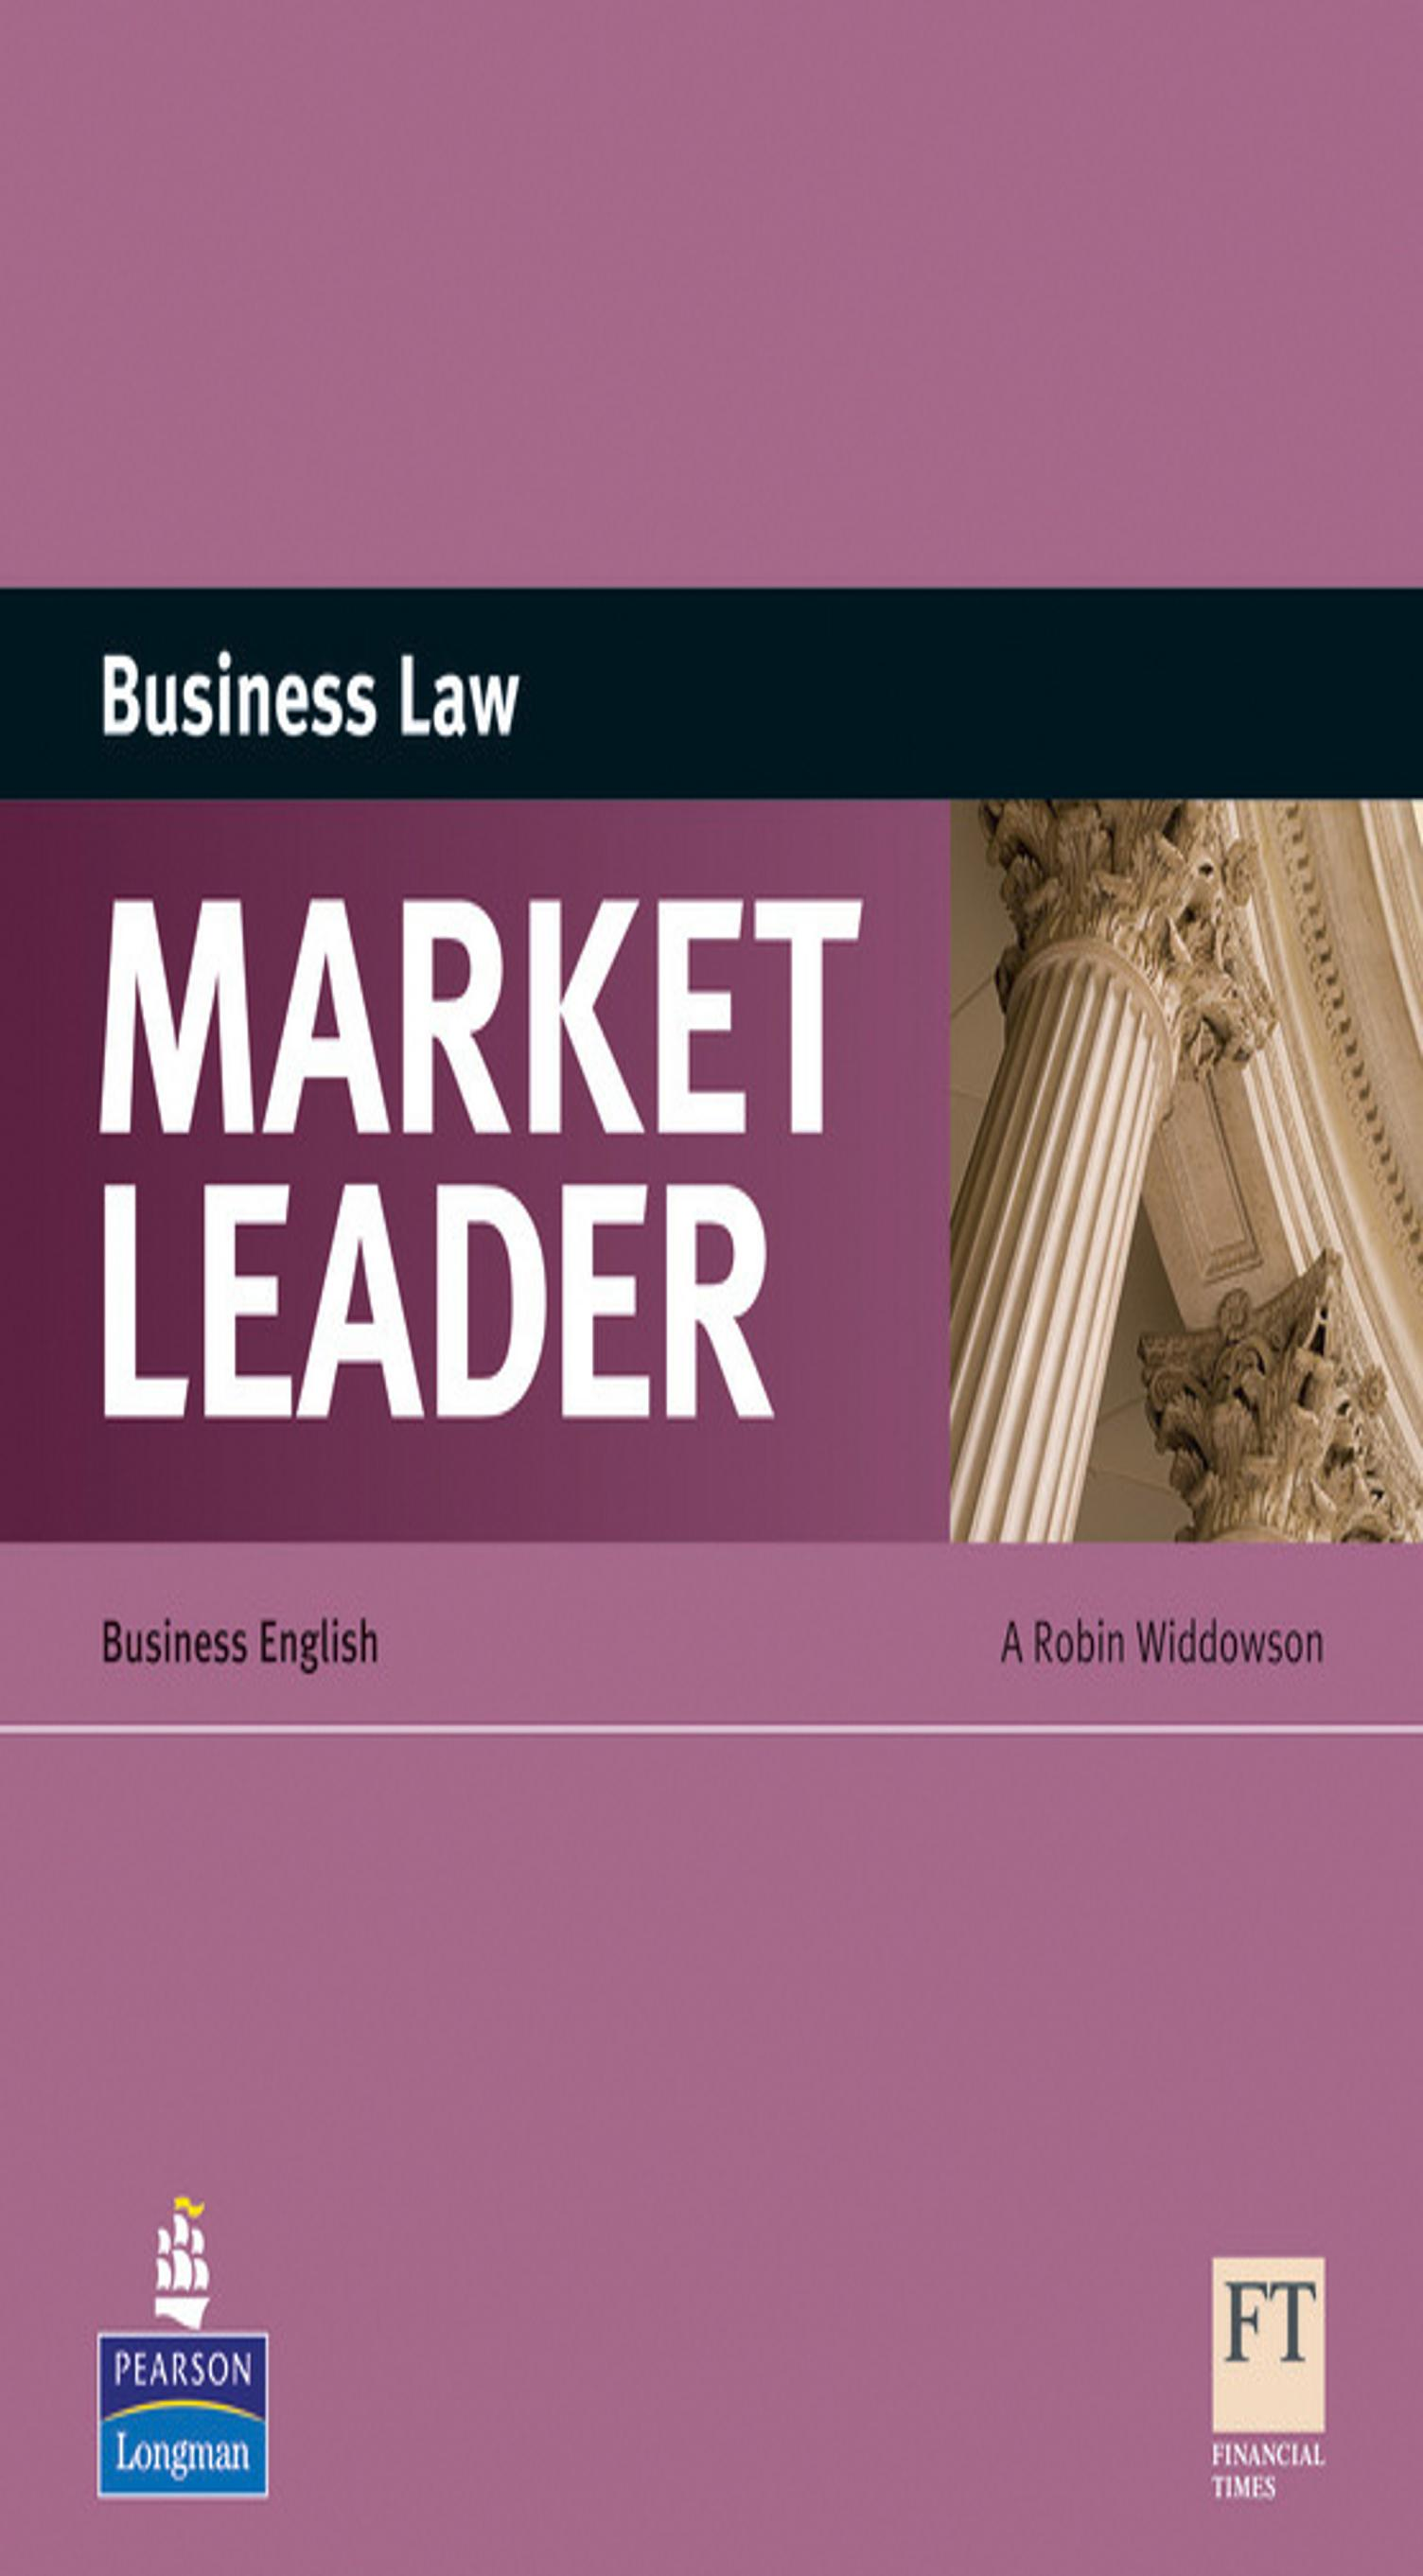 MARKET LEADER BUSINESS LAW